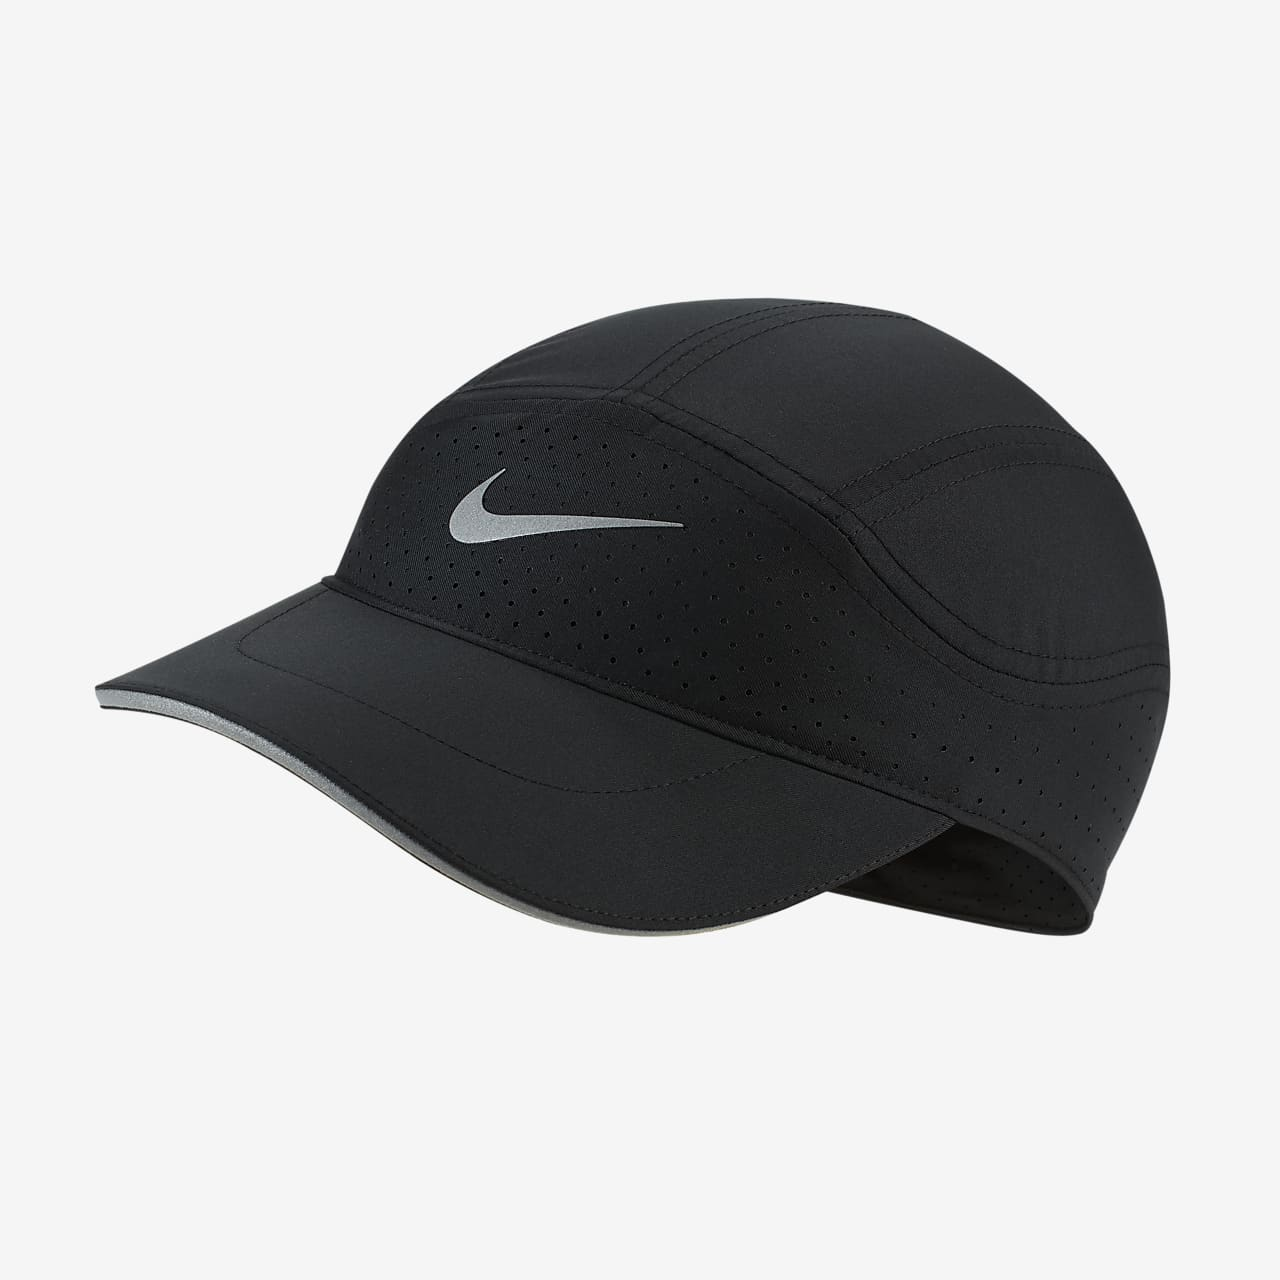 NIKE AIR TN AEROBIL AW84 BASEBALL CAP BLACK BLUE ONE SIZE ADJUSTABLE FIT